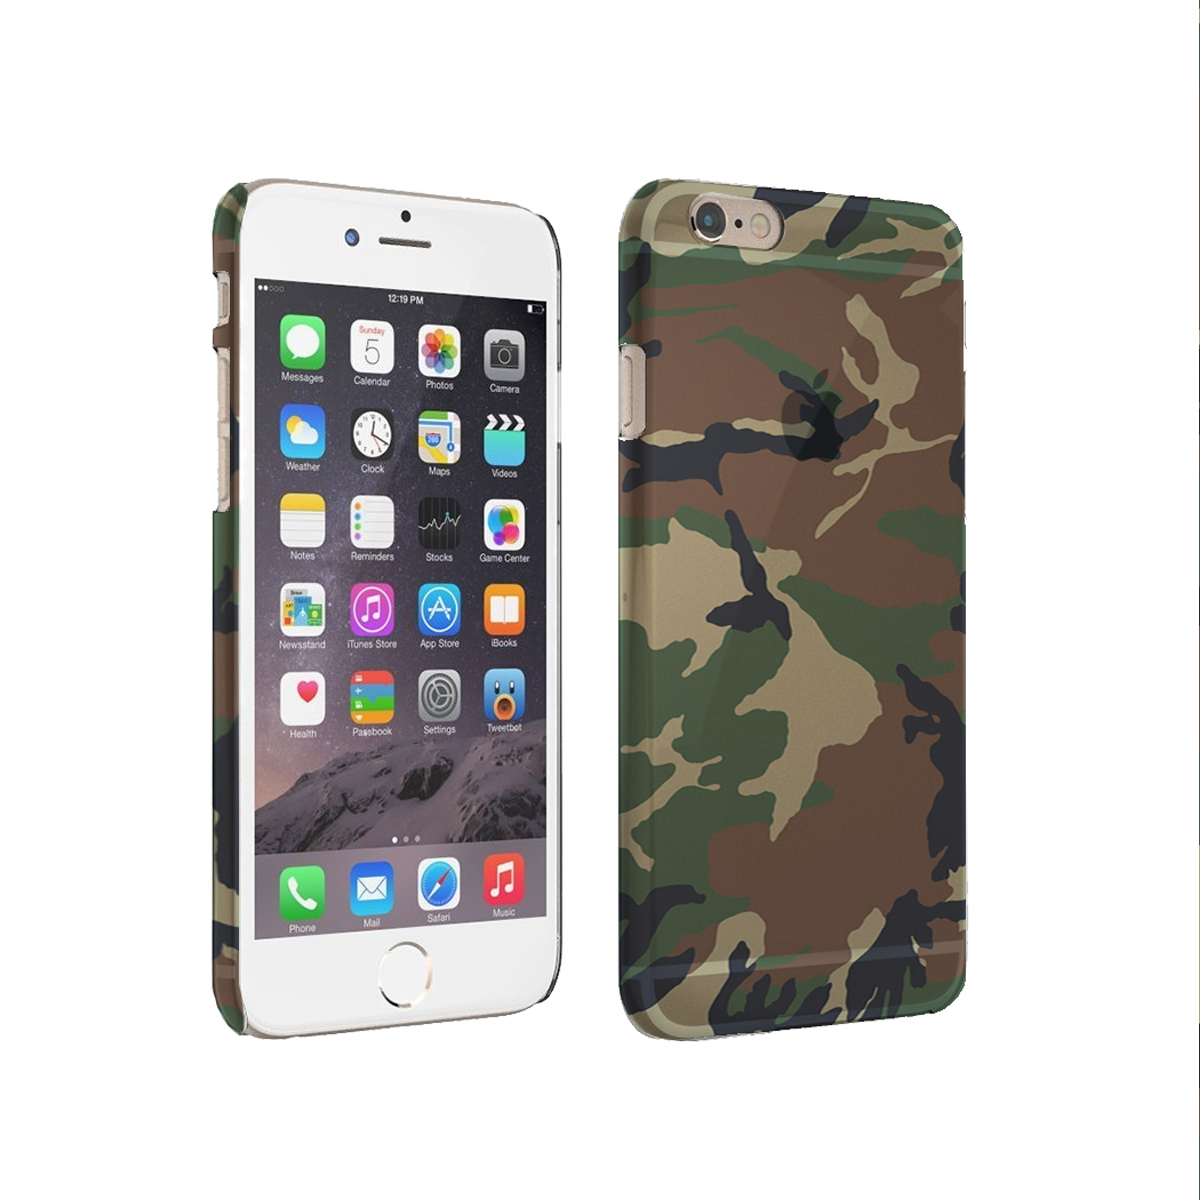 KuzmarK iPhone 6 Clear Cover Case - Camouflage